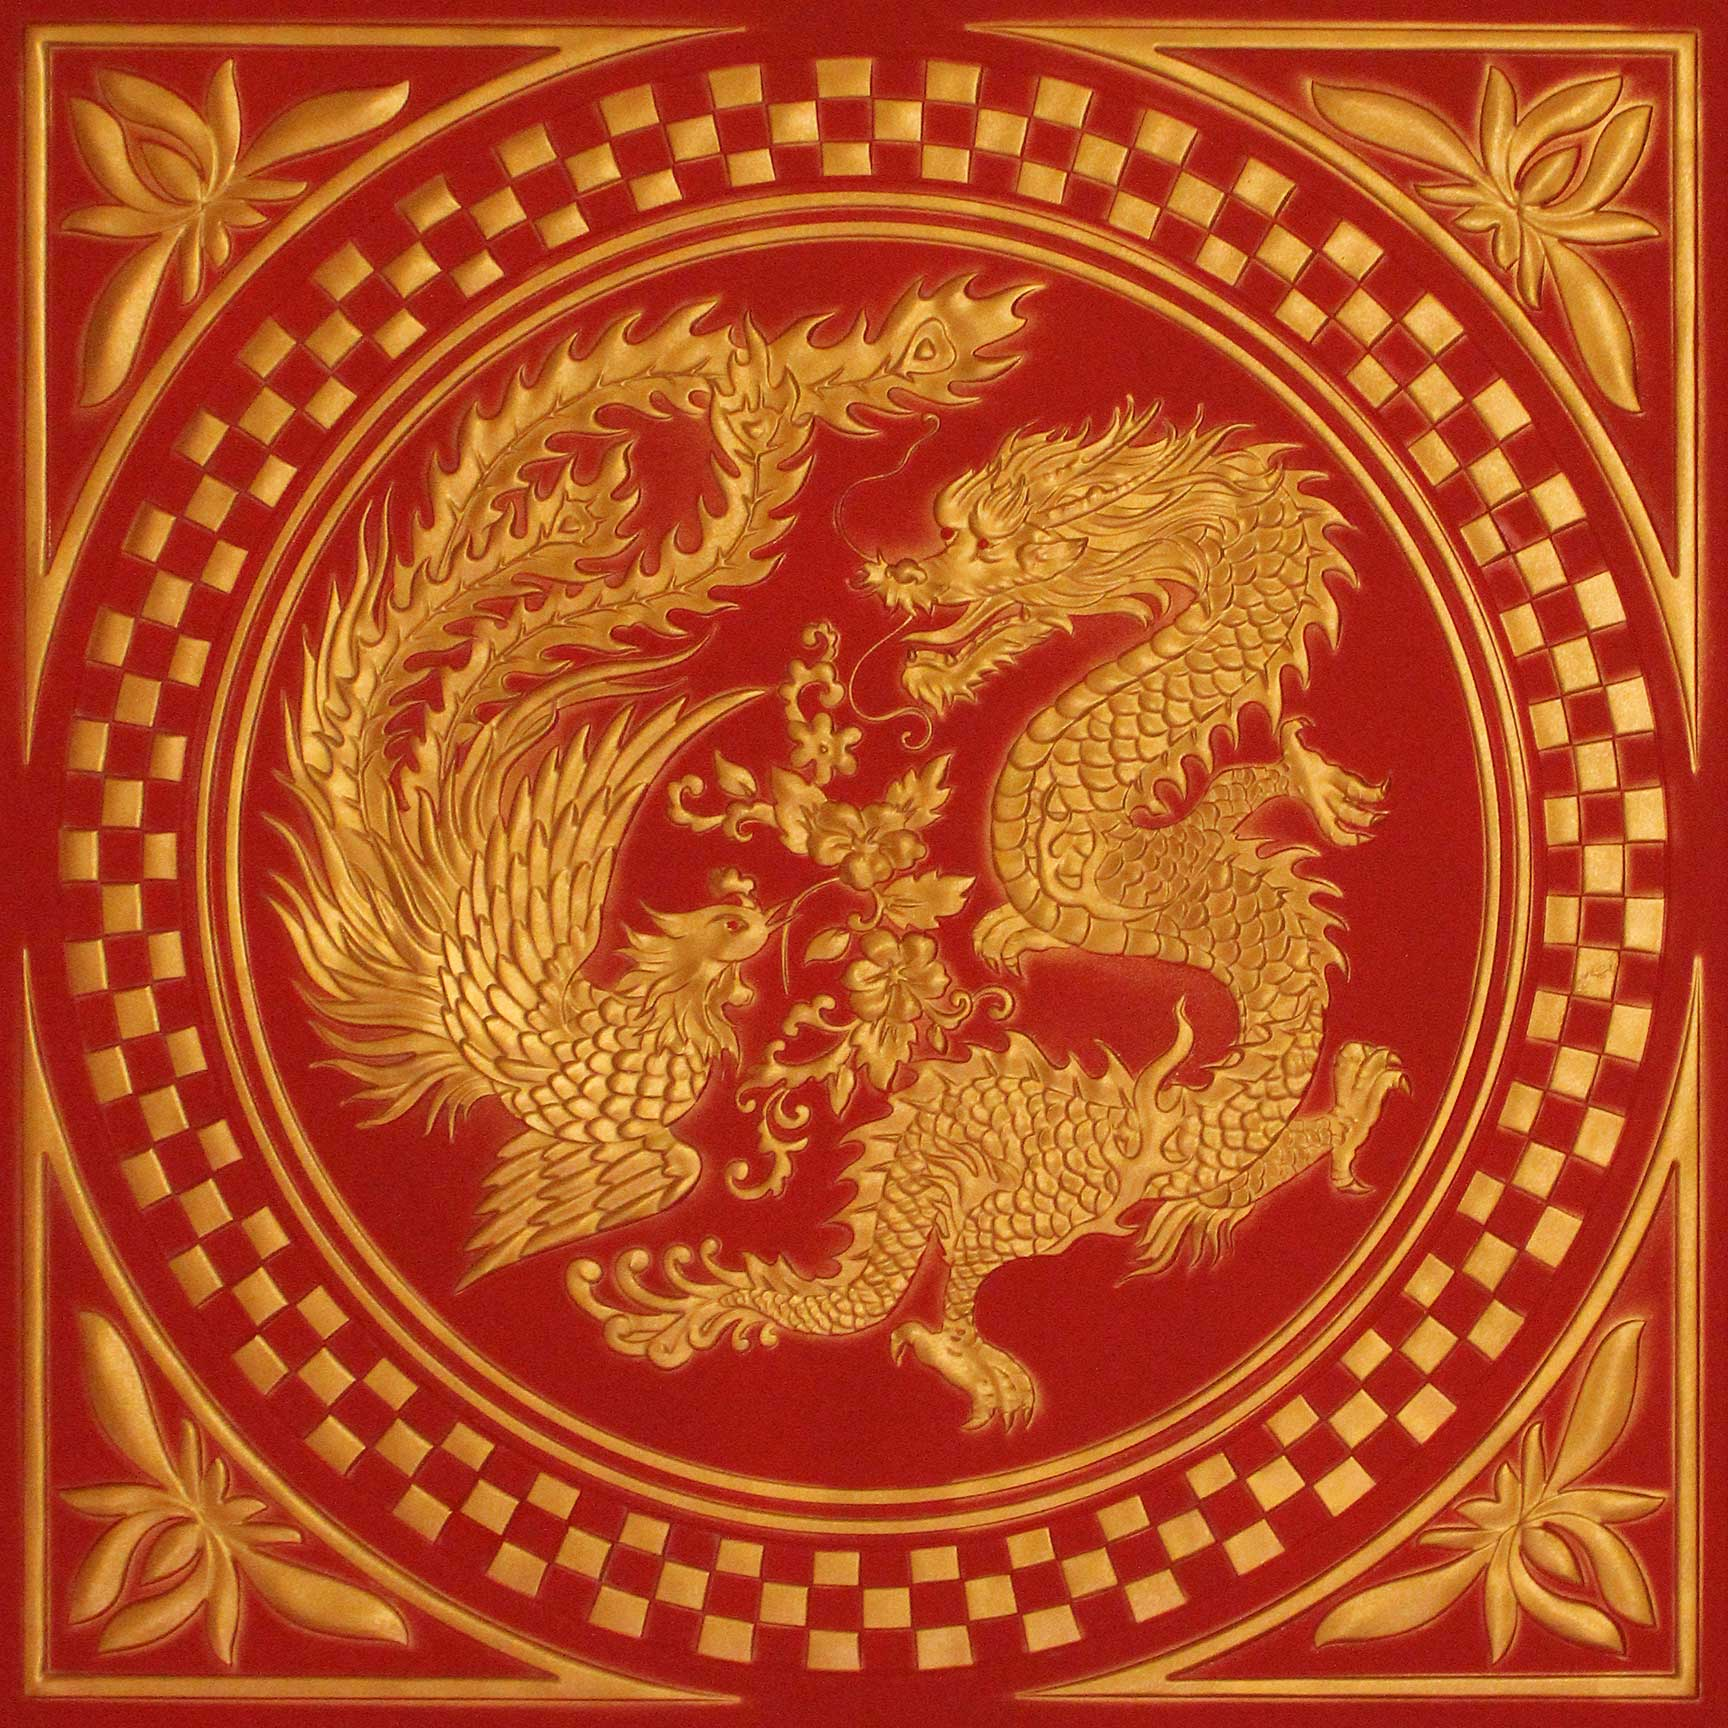 Chinese Dragon Ceiling Tile